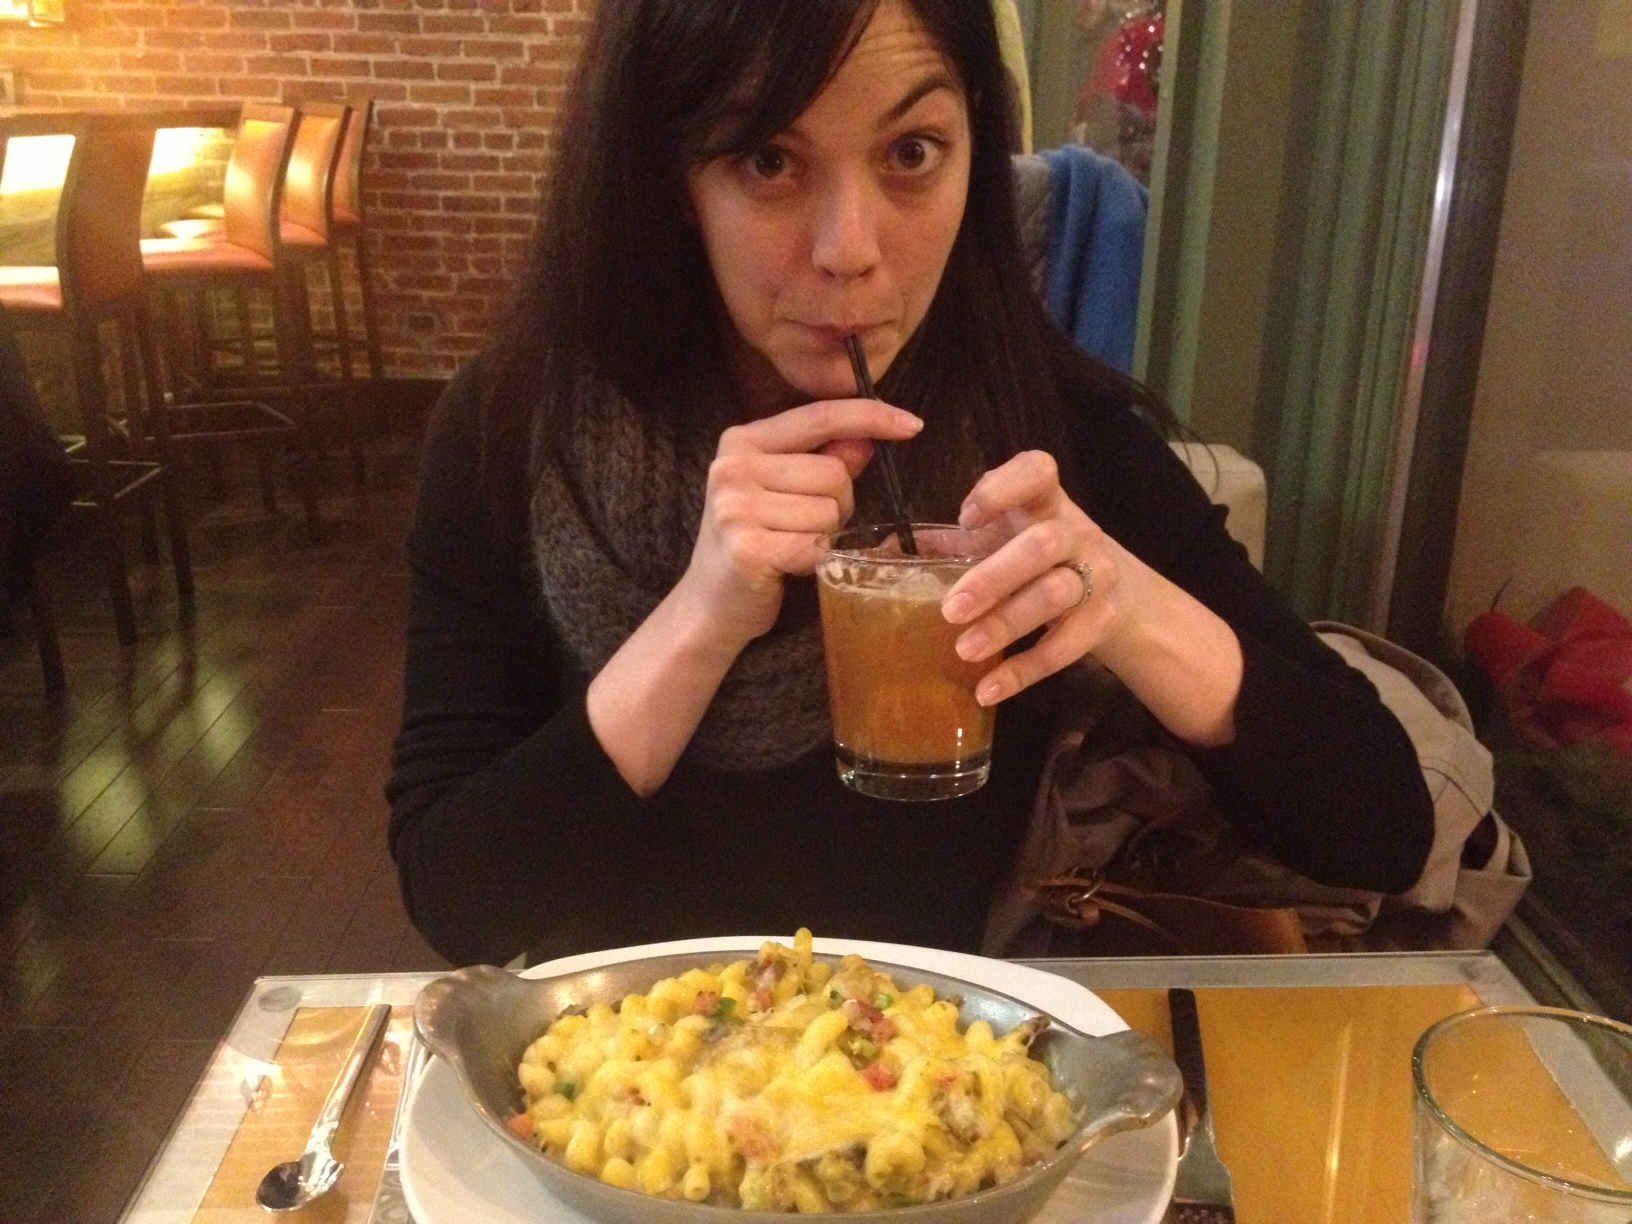 Per our server's recommendation, I ordered the green chile mac and cheese. I was not at all impressed.